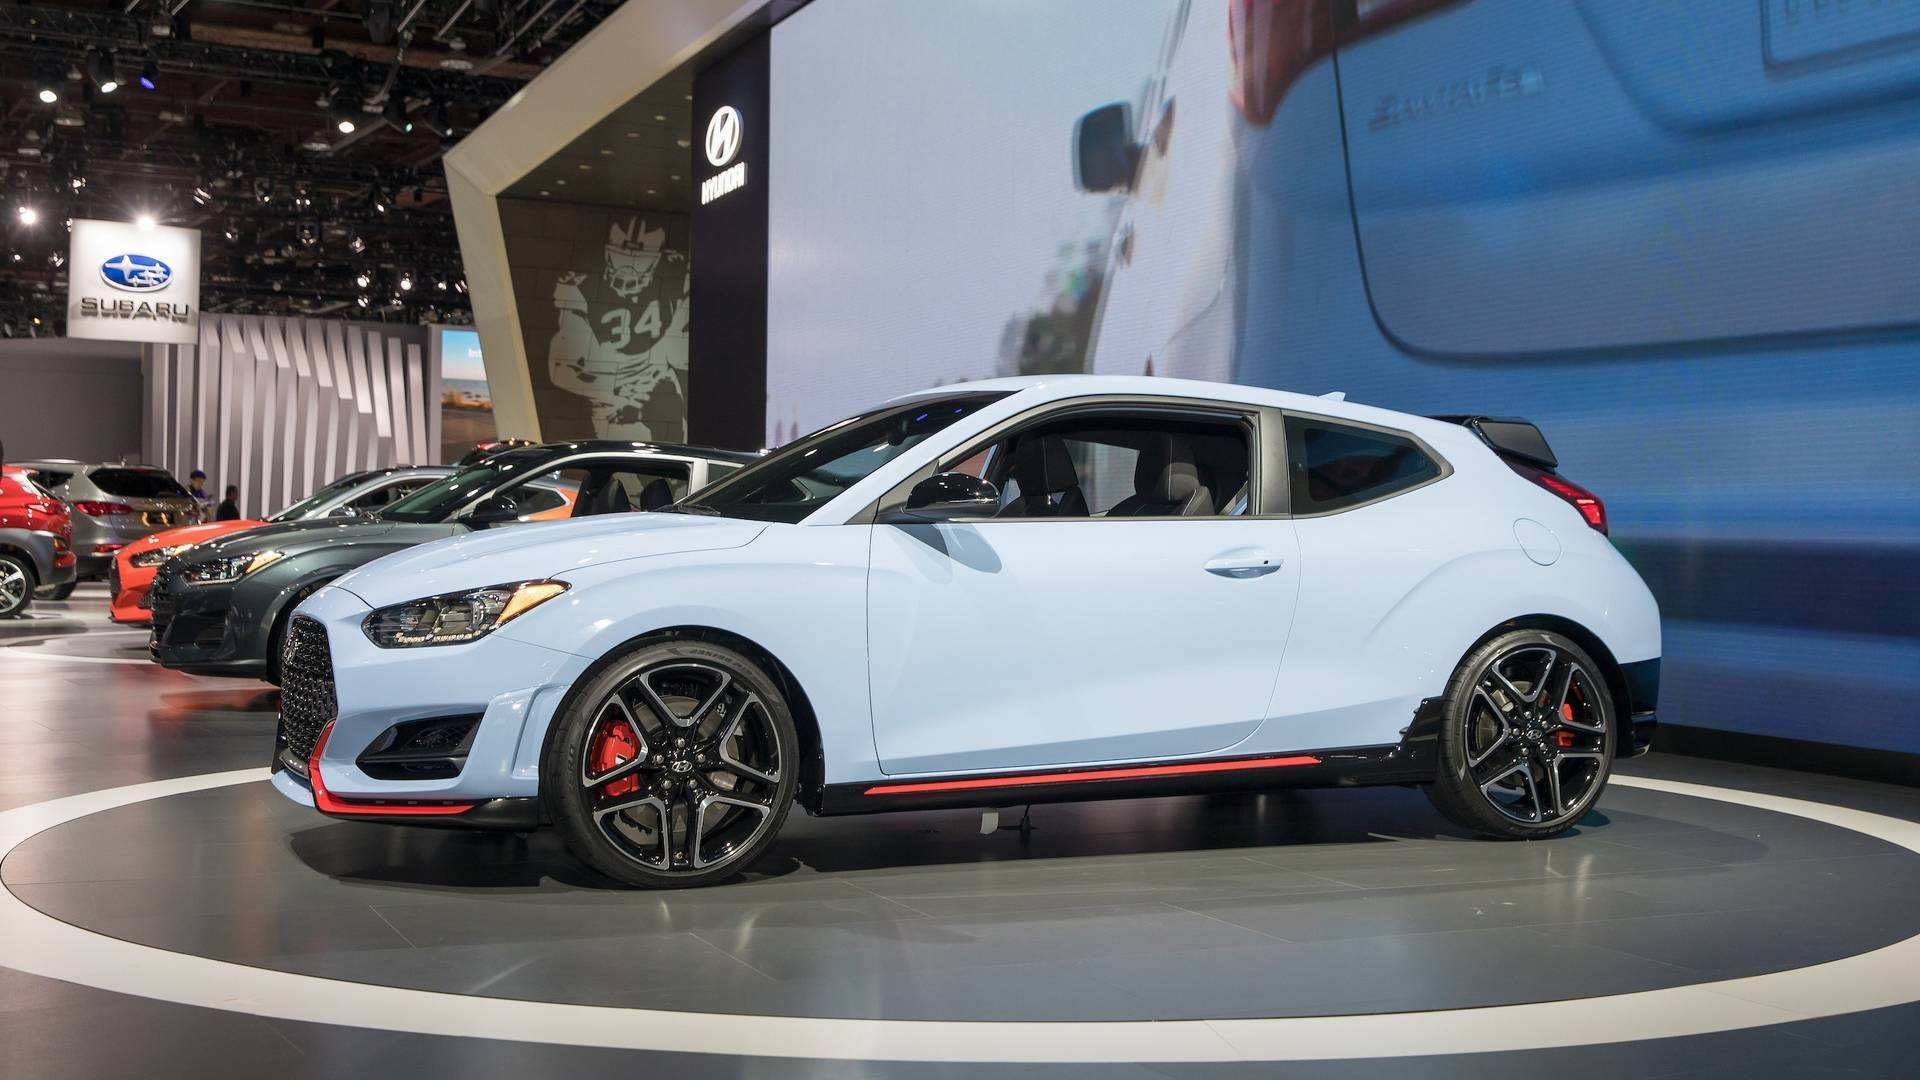 78 The Best 2020 Hyundai Veloster Exterior And Interior